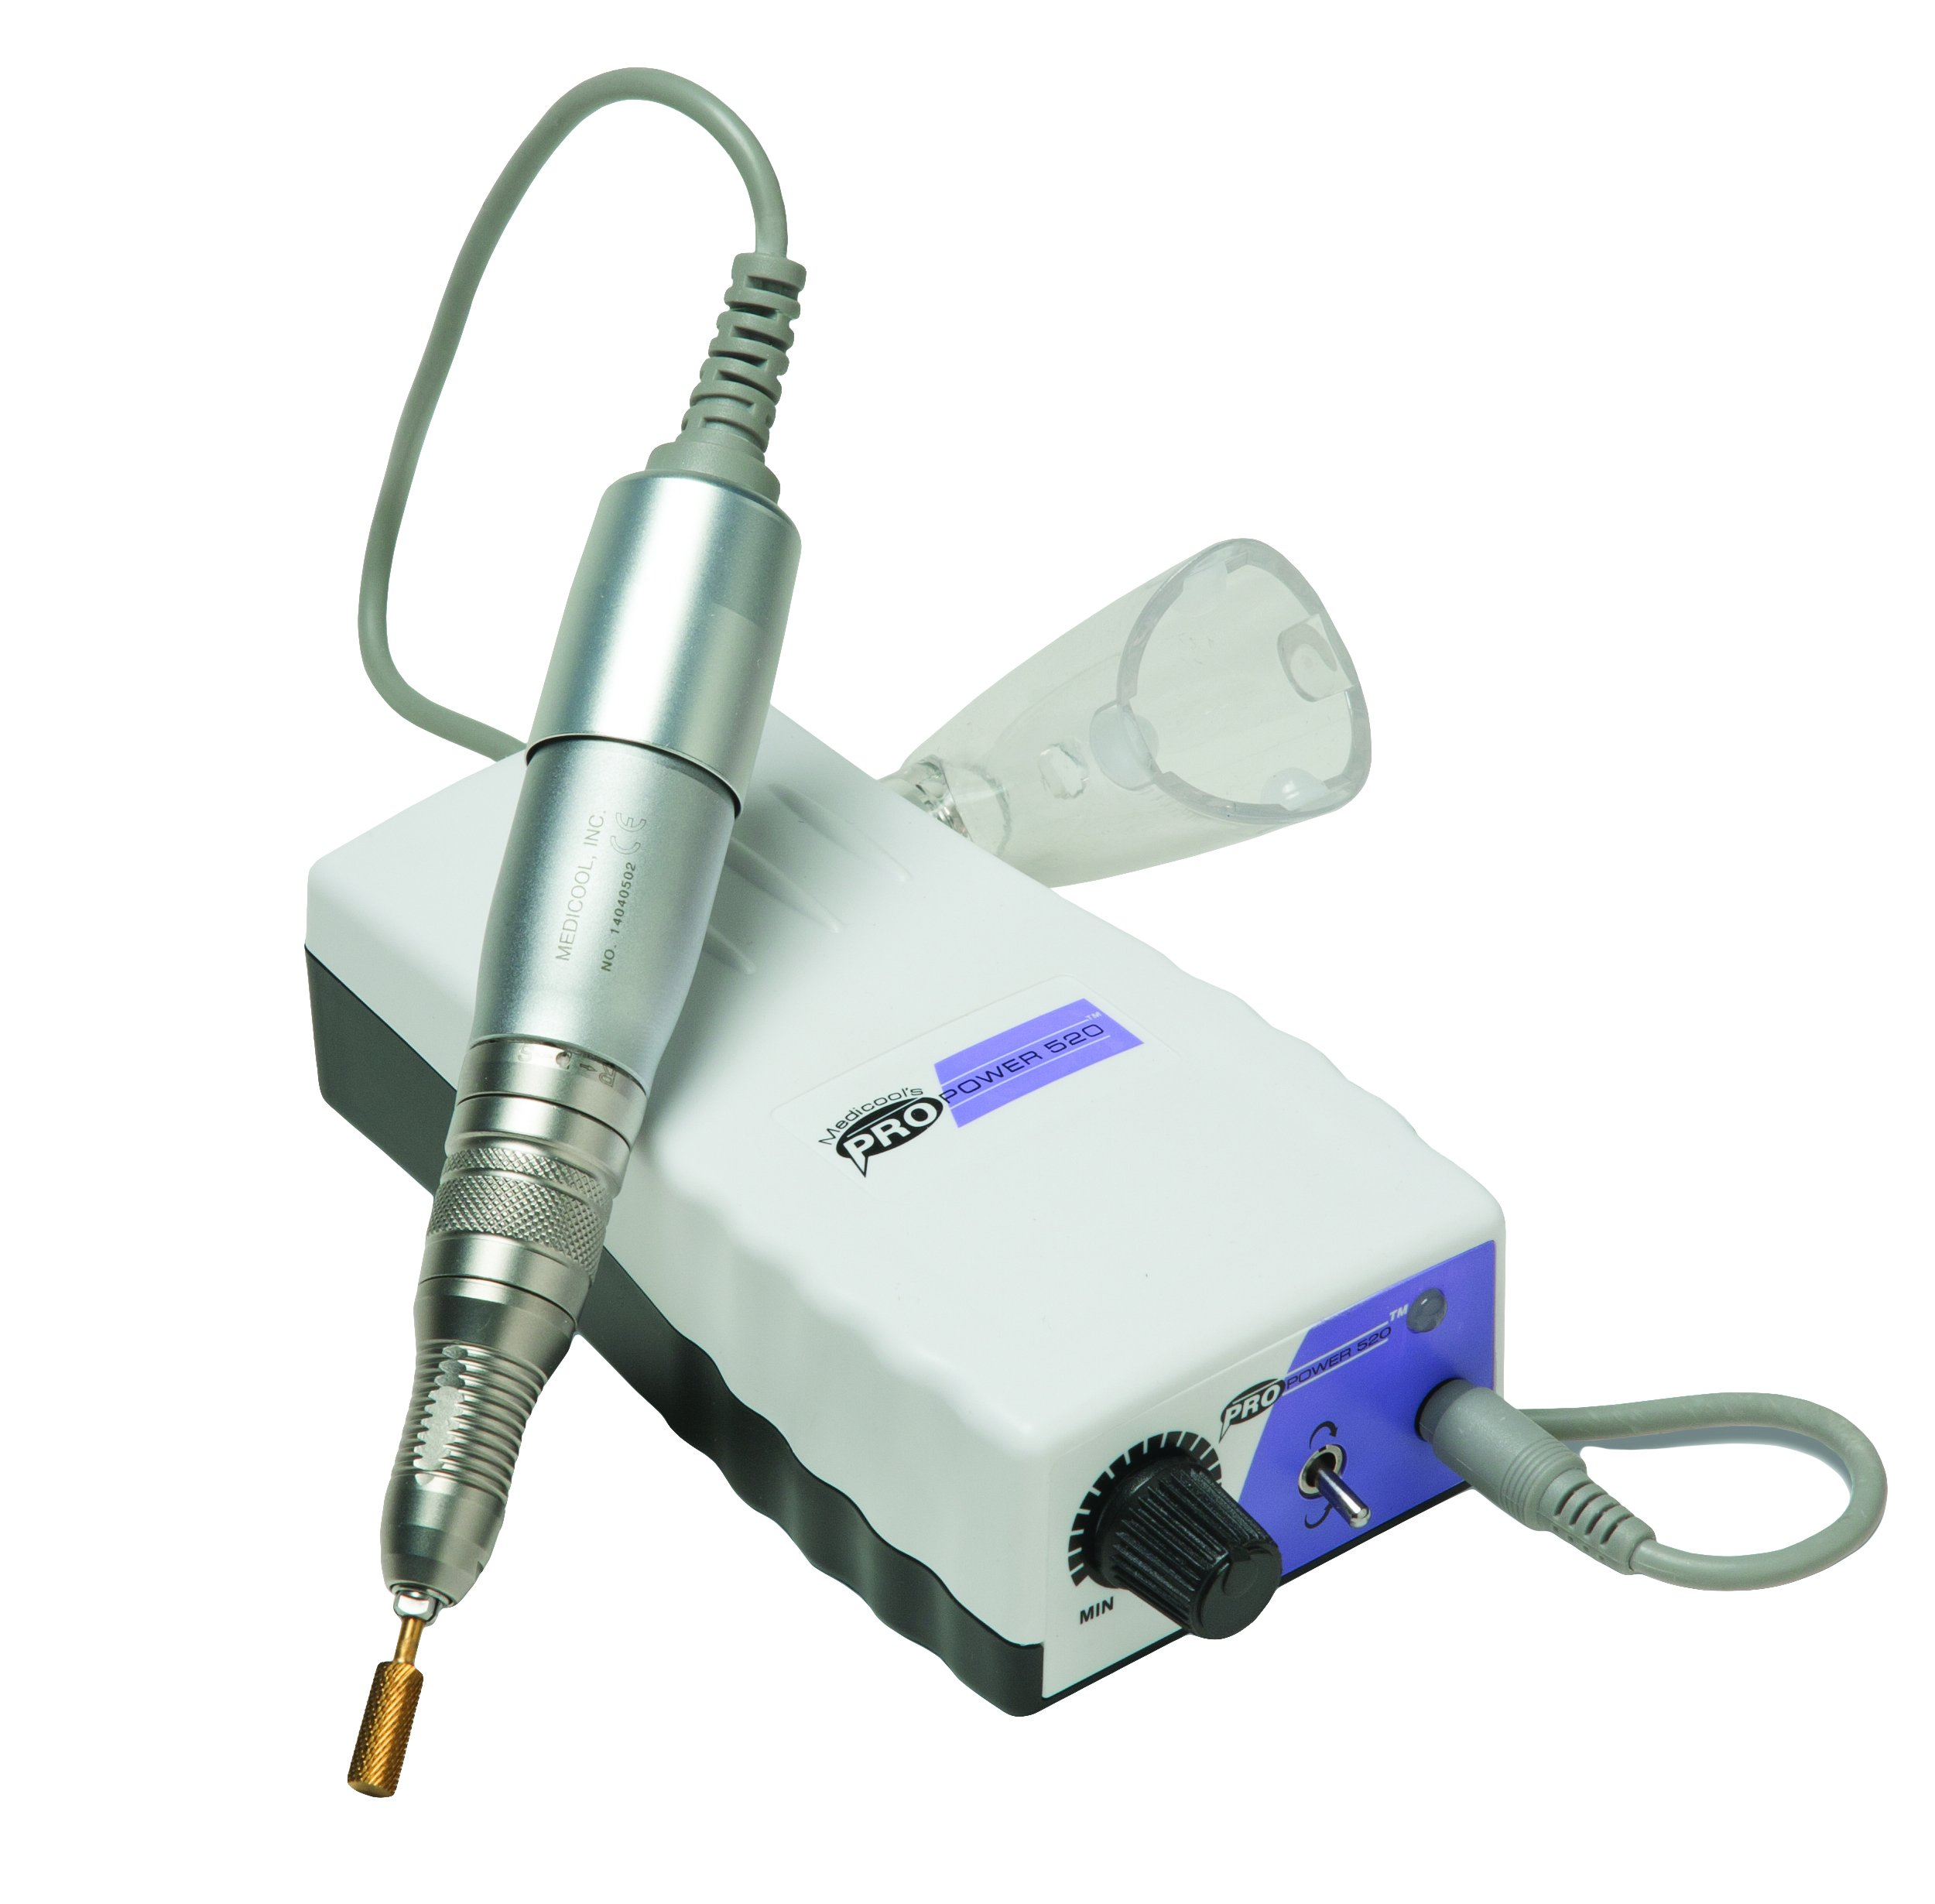 Medicool 520 Professional Electric Nail Filing System by Medicool